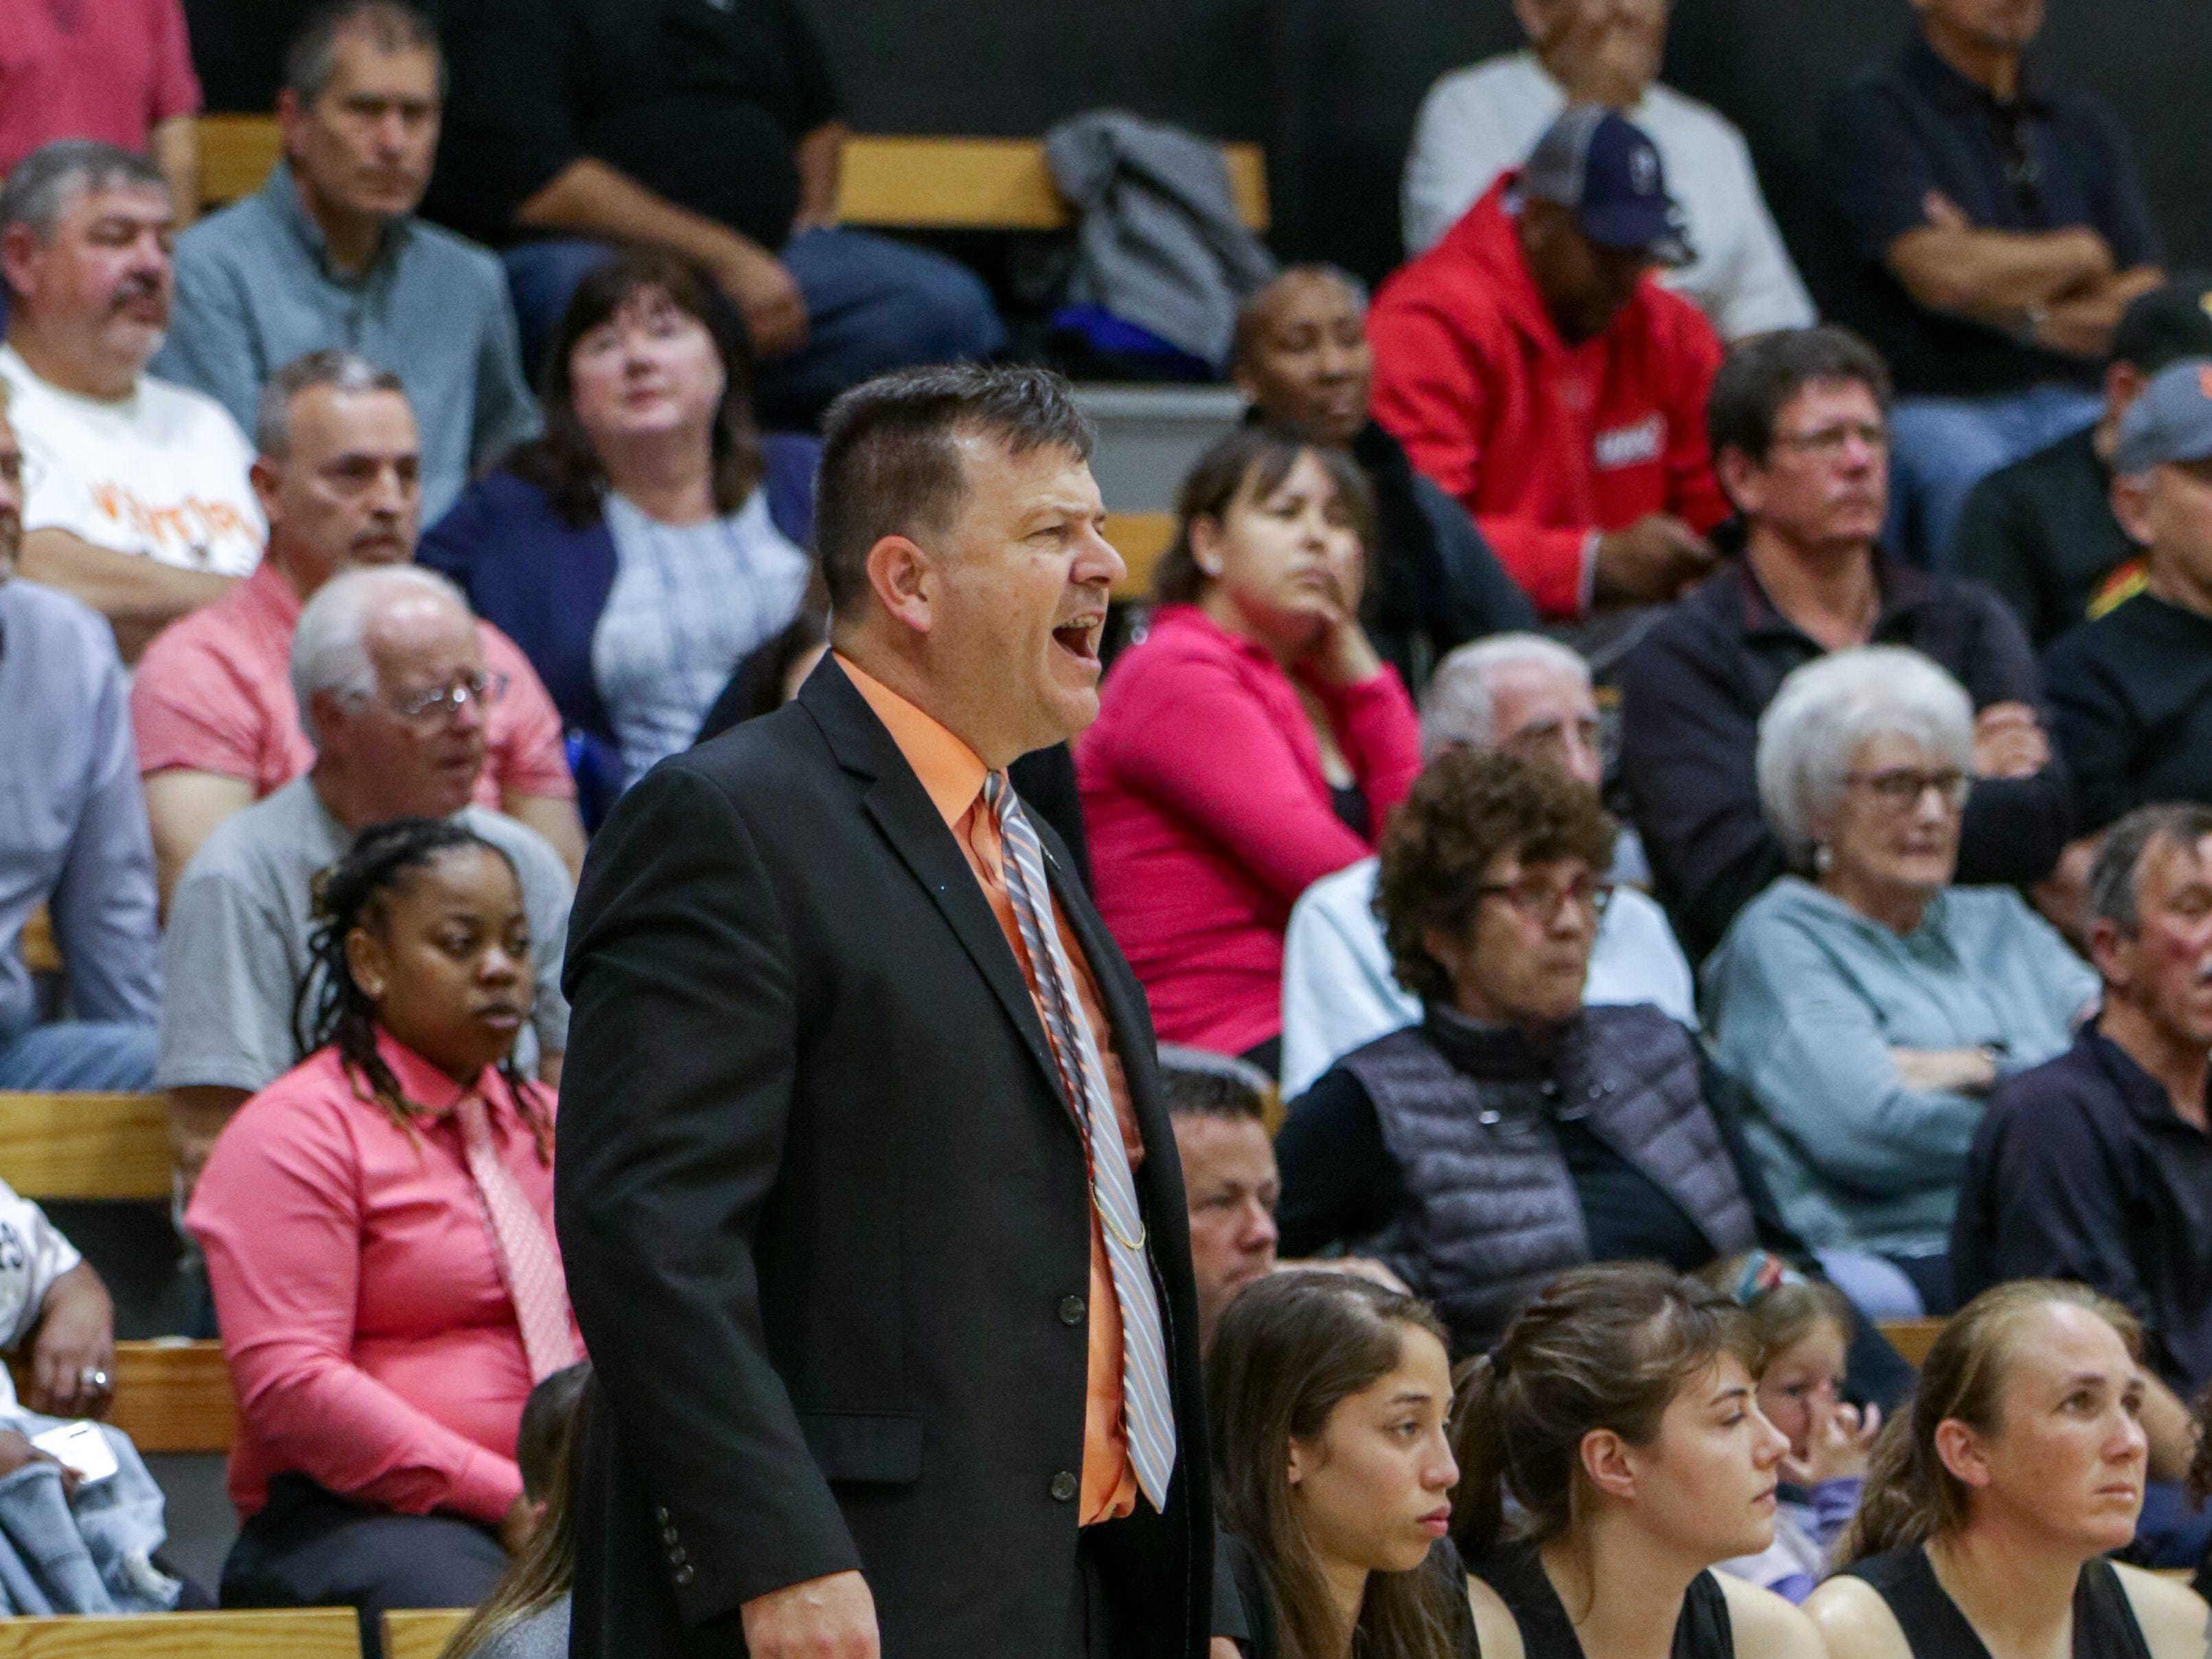 Ventura College assistant coach Robin Hester yells out instructions during the CCCAA state quarterfinals against Diablo Valley on Friday night in Ventura. Hester had to take over when head coach Ned Mircetic was forced to leave in the third quarter because of a family medical emergency.